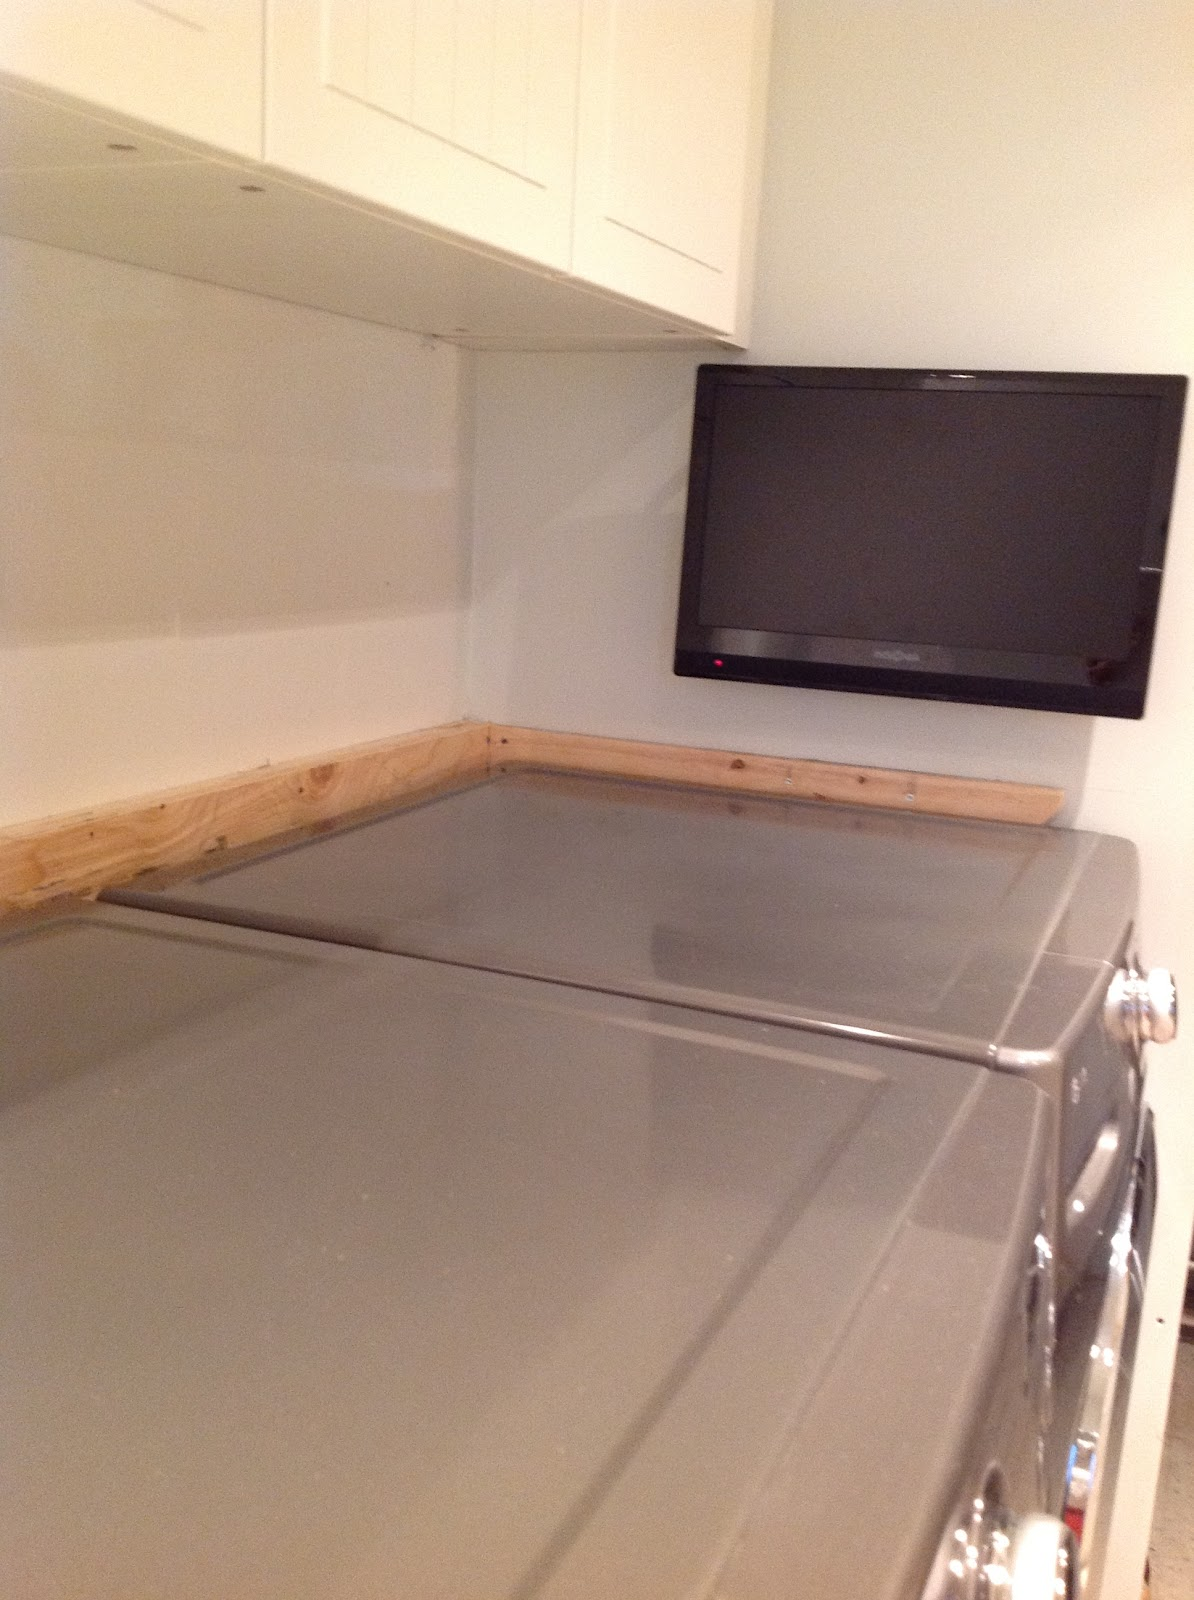 counter over front load washer and dryer, How To Install A Countertop Over A Washer And Dryer, DIY floating countertop in the laundry room, countertop cleat